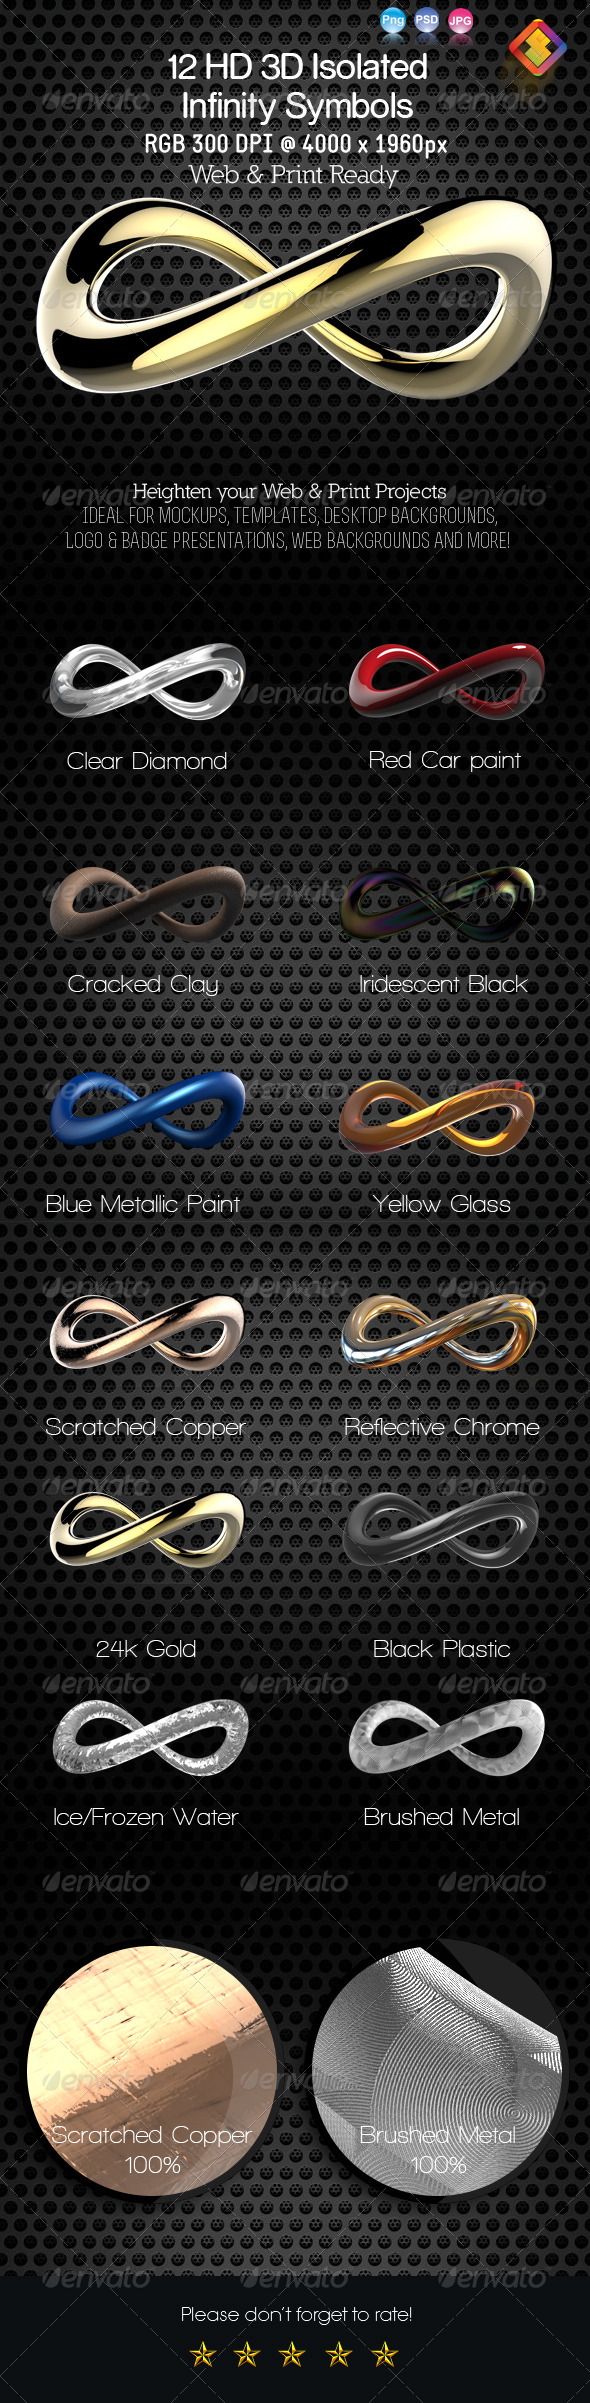 GraphicRiver 12 HD 3D Isolated Infinity Symbol 6416167